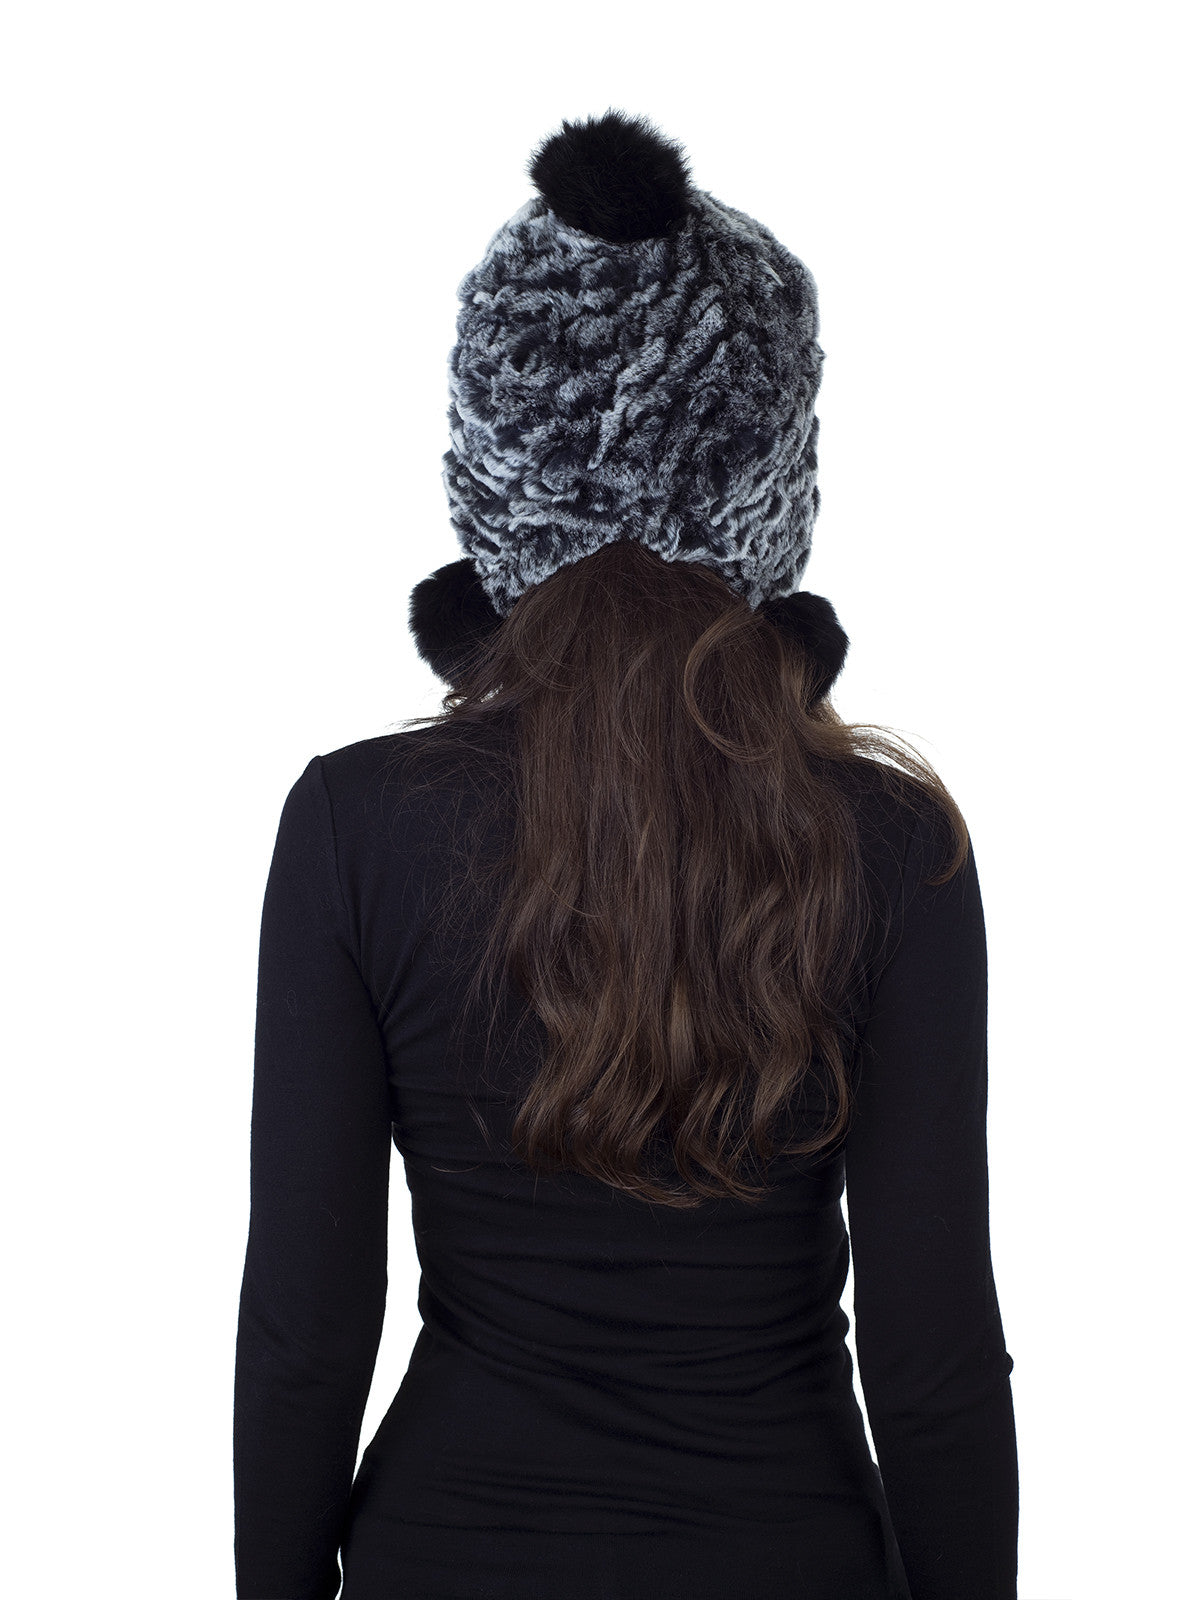 Black Frost Knitted Rex Rabbit Fur Hat with Earflaps